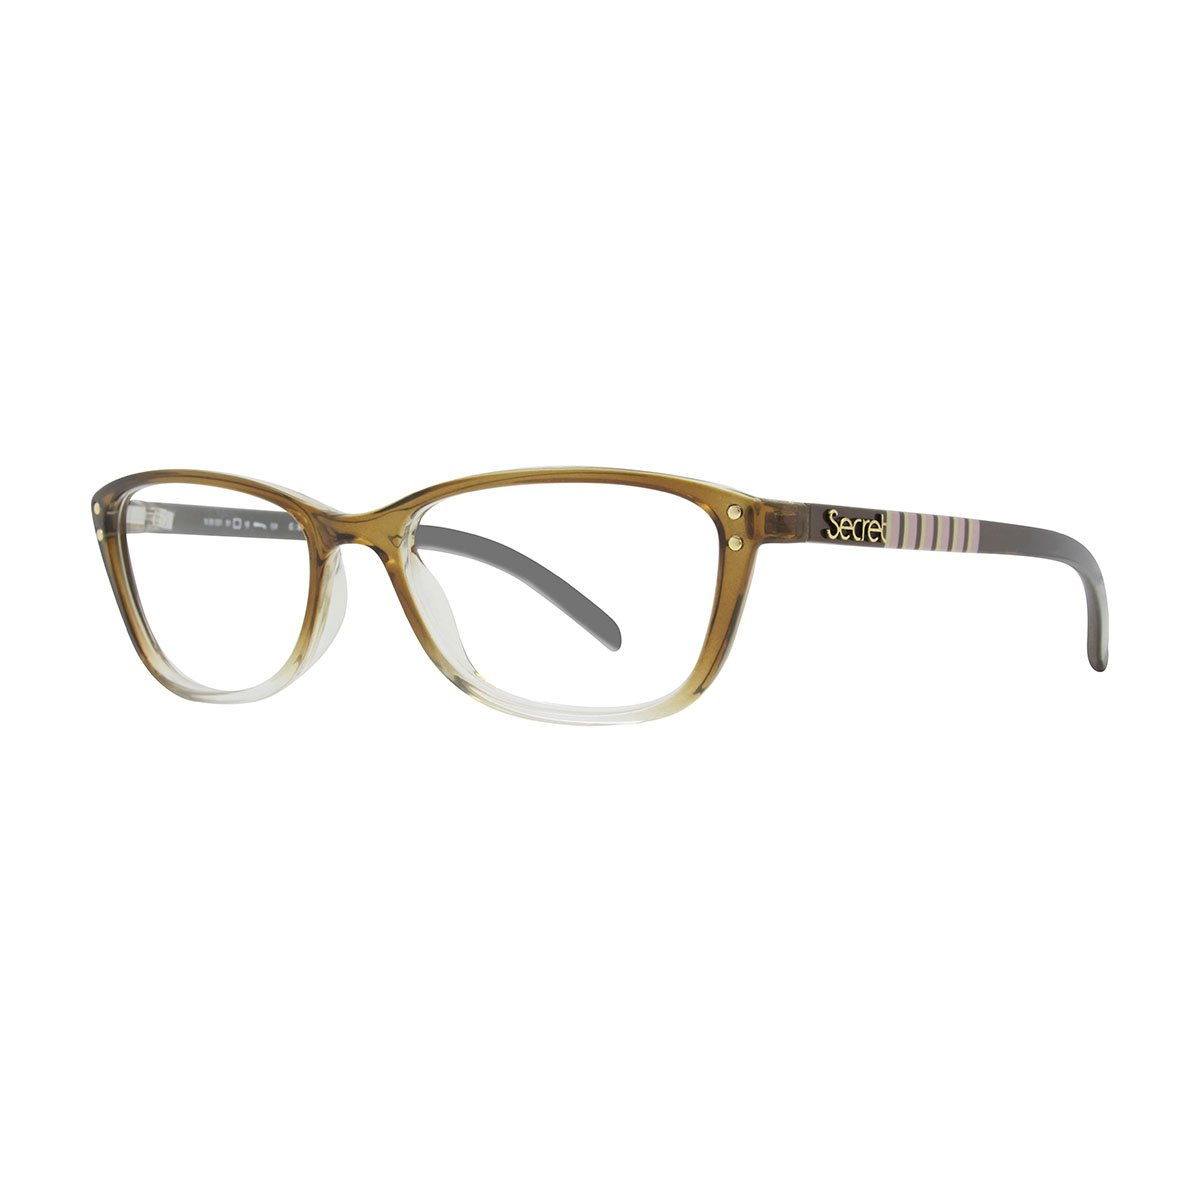 SECRET GRILAMID 80031 GLASSY BROWN STRIPES